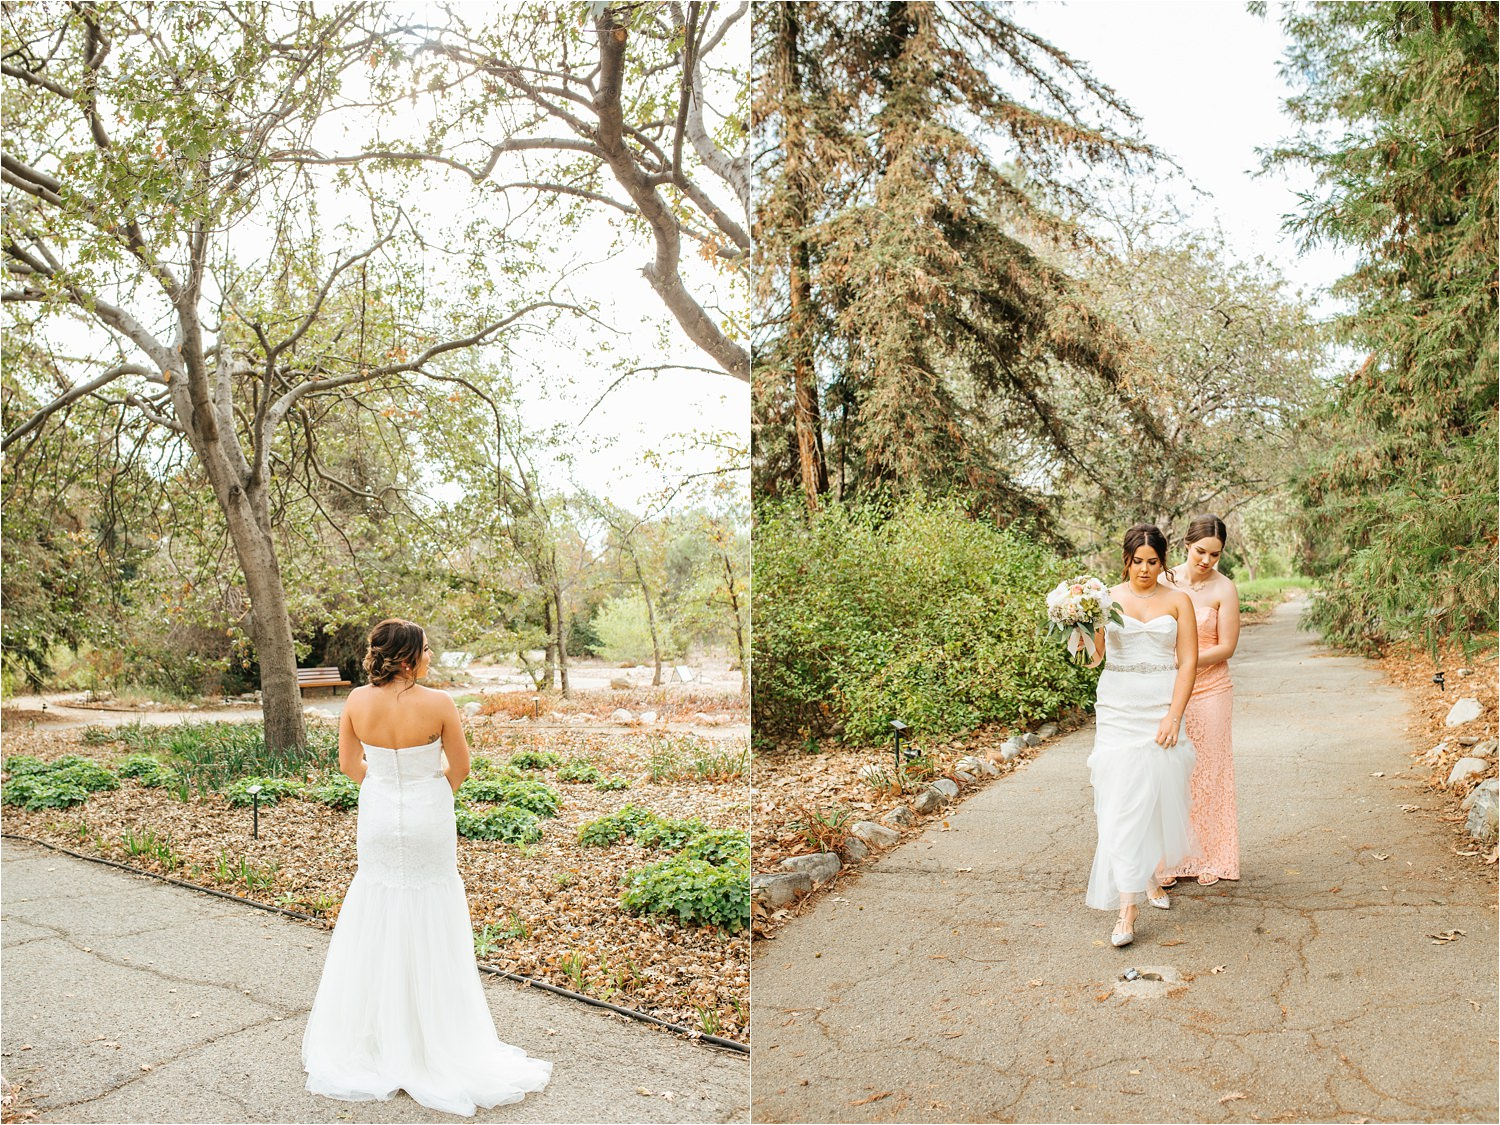 Rancho Santa Ana Botanic Garden Wedding - Claremont, CA Wedding - Wedding Photographer in Southern California - http://brittneyhannonphotography.com